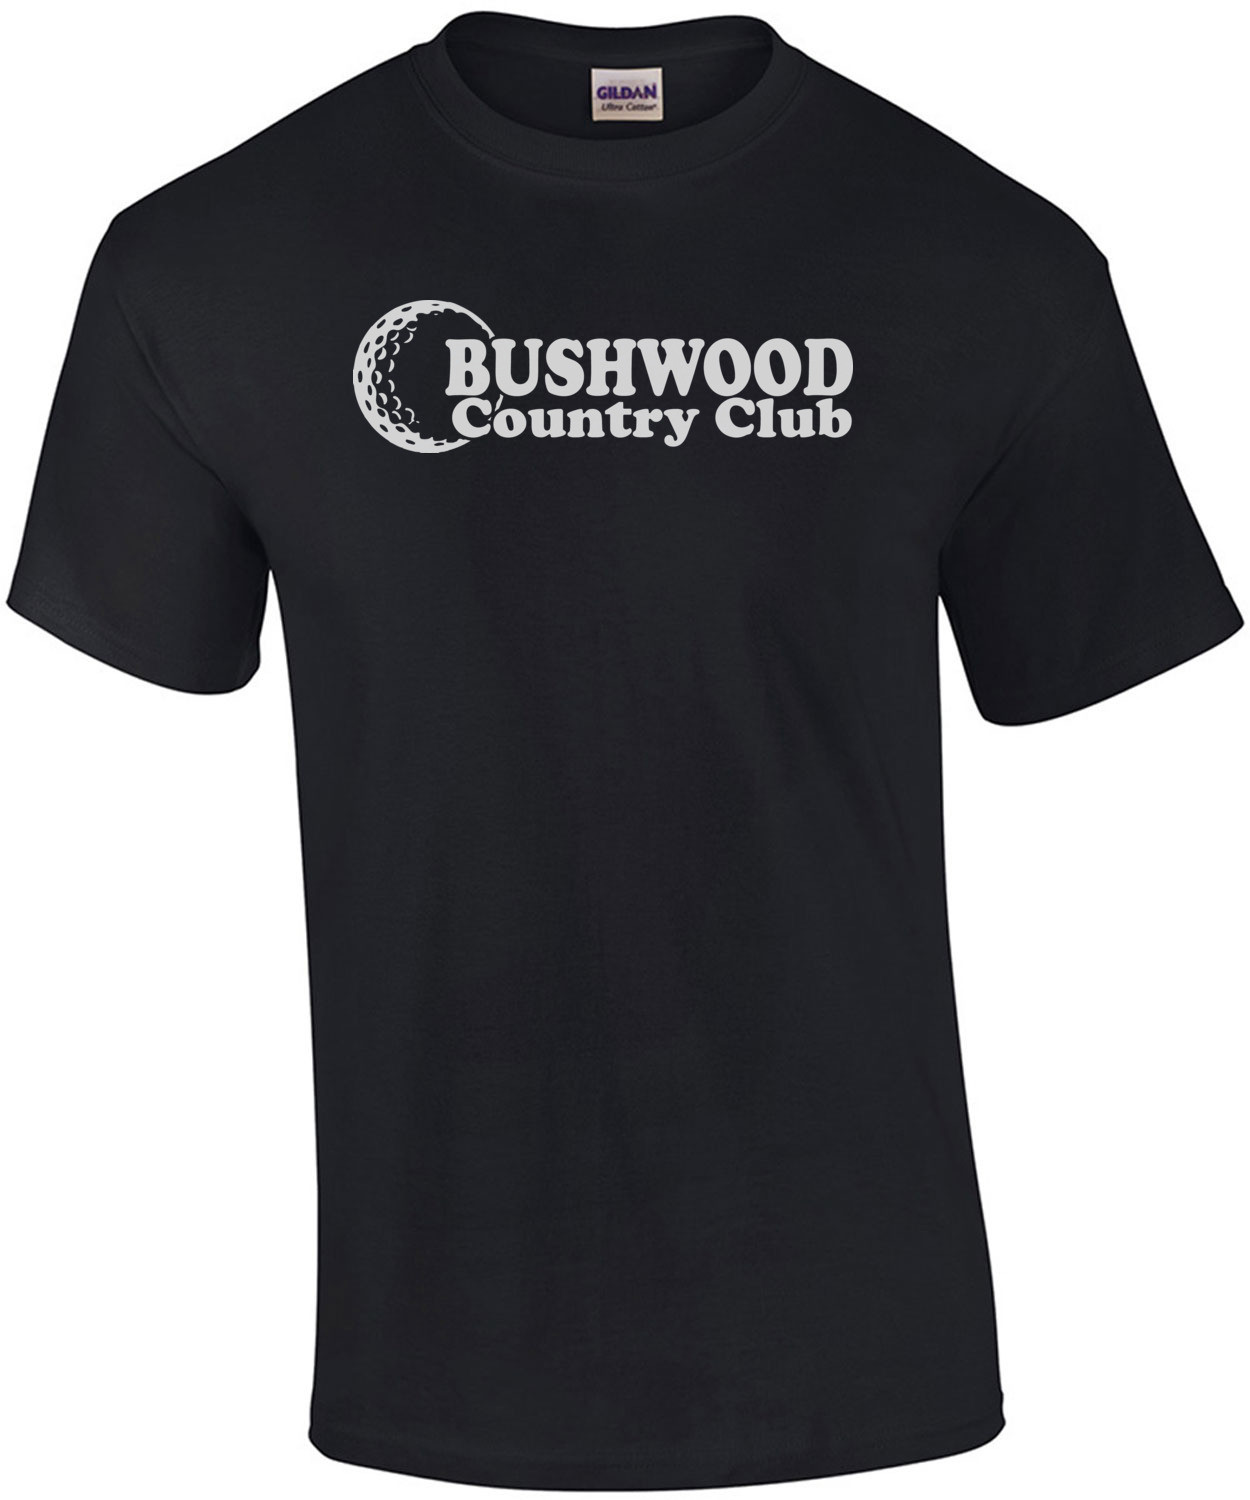 Bushwood Country Club - Caddyshack T-Shirt